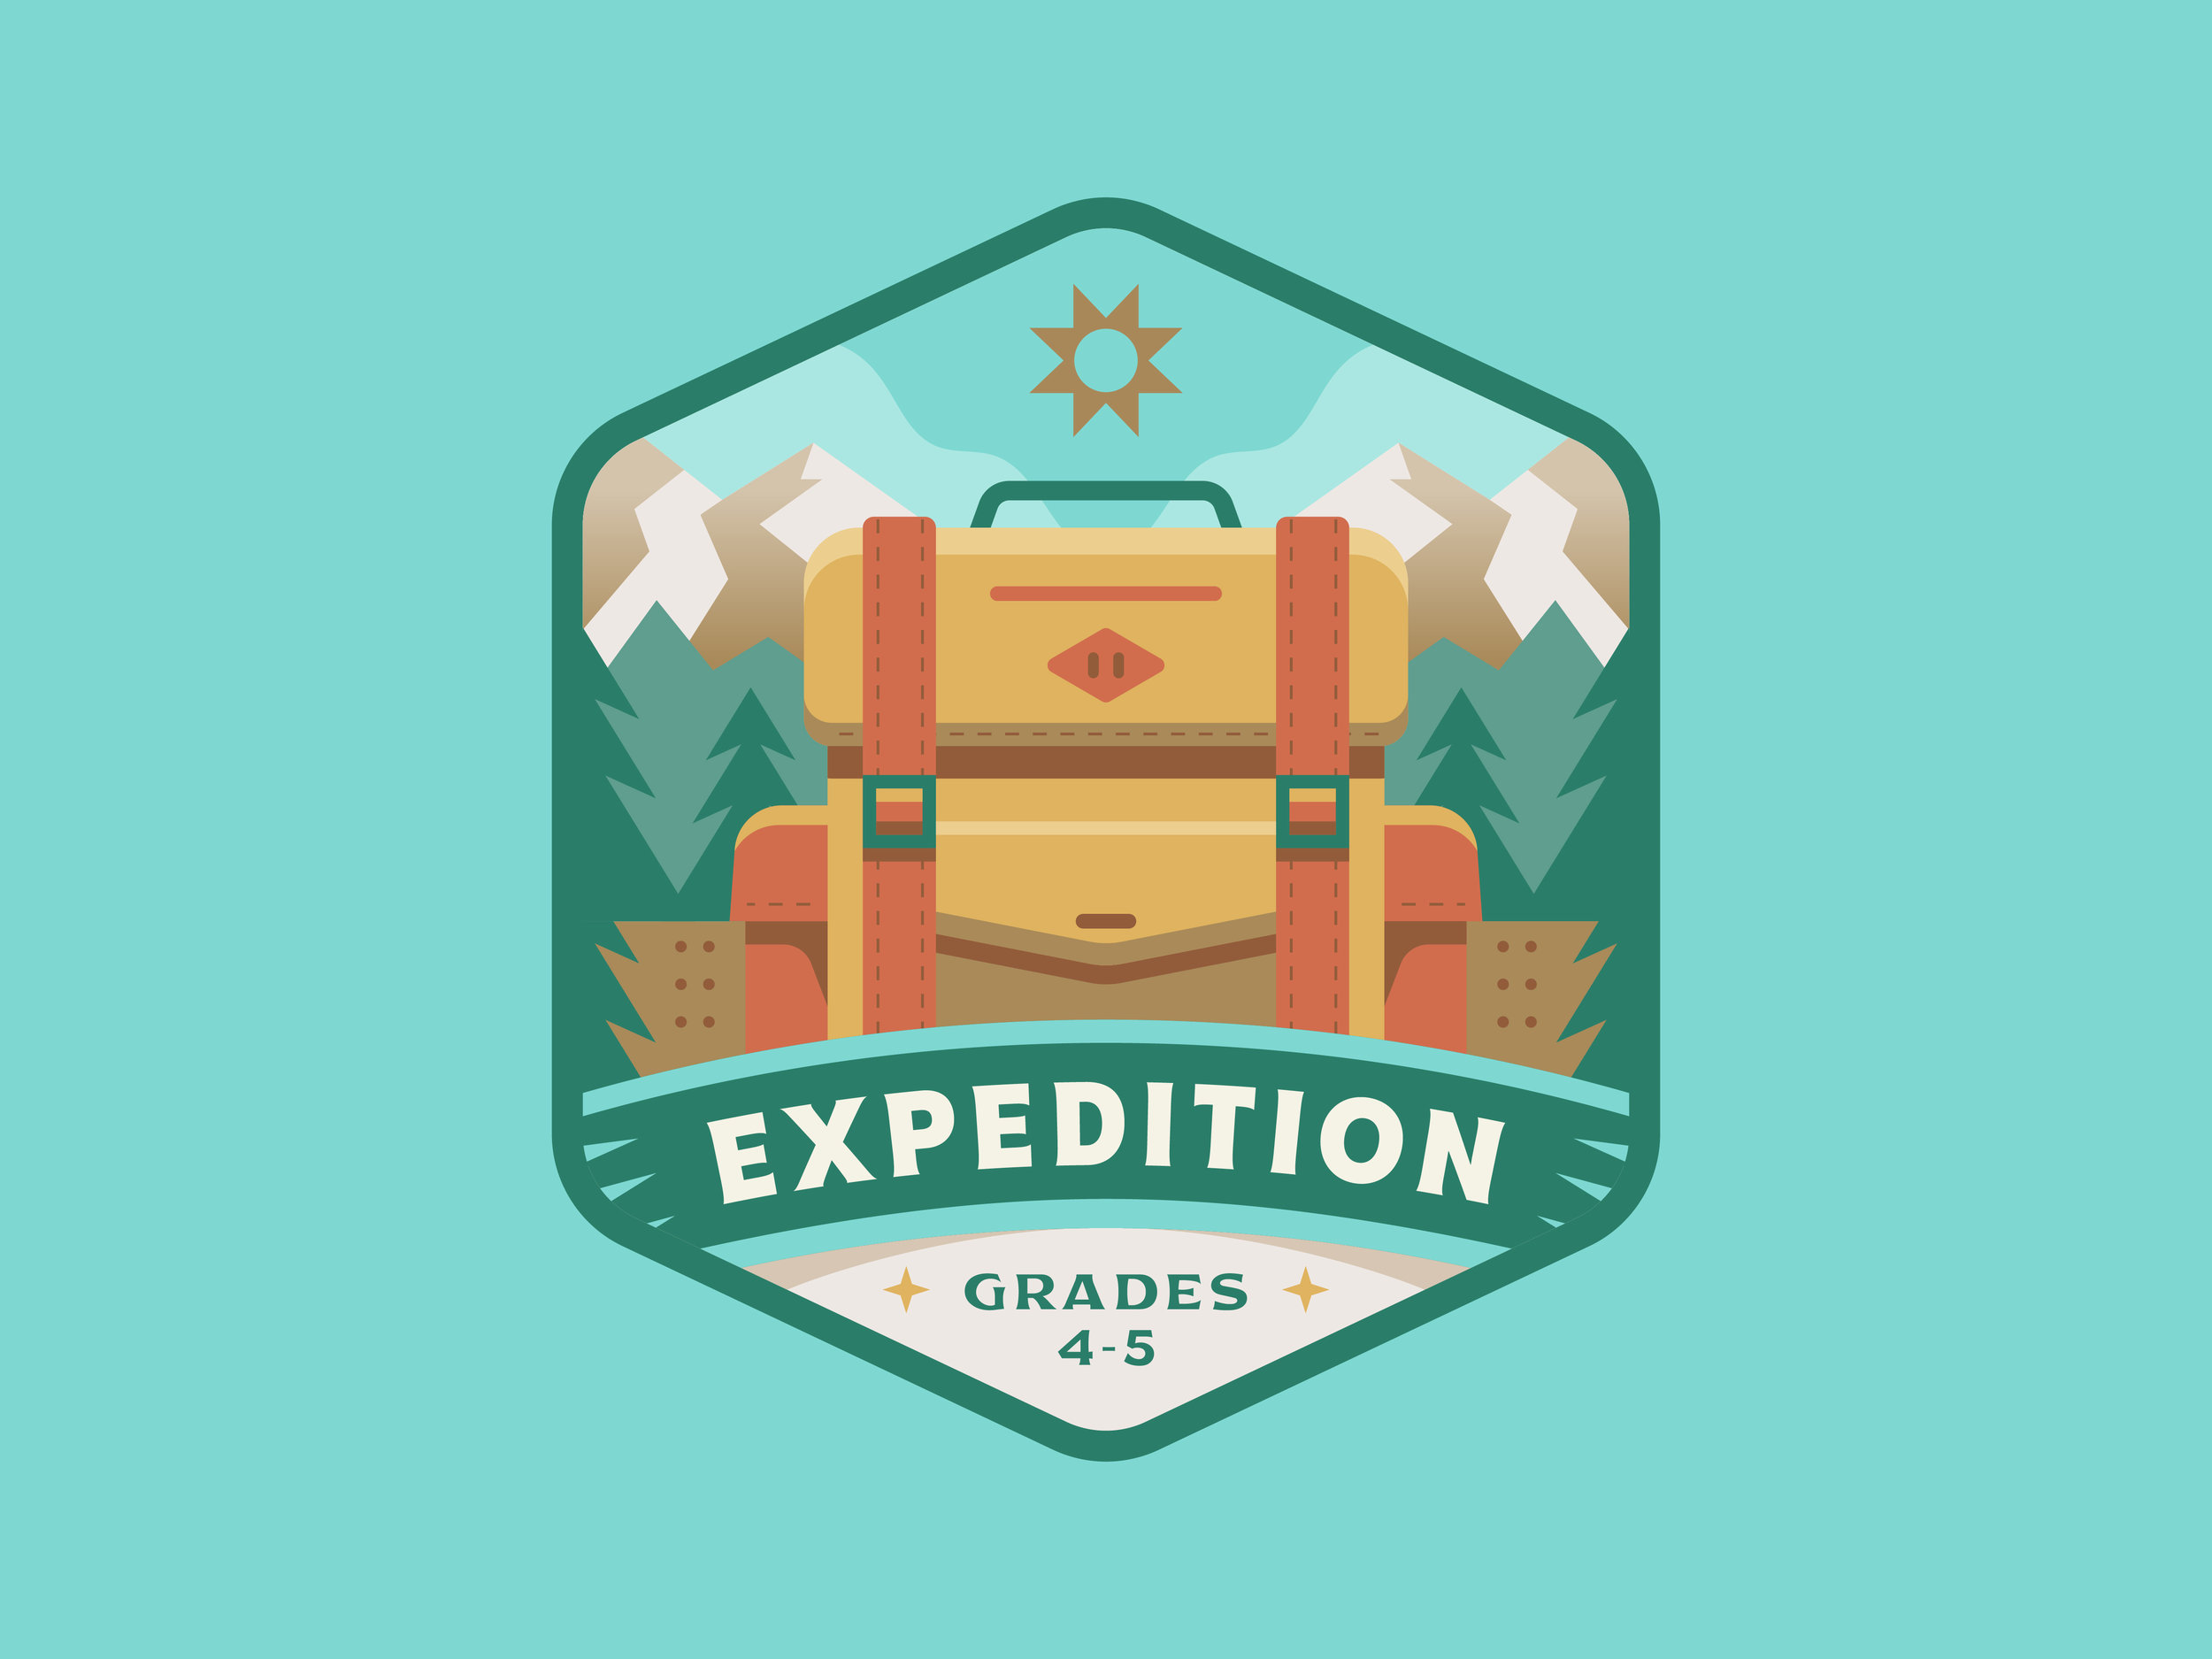 expedition-logo.jpg